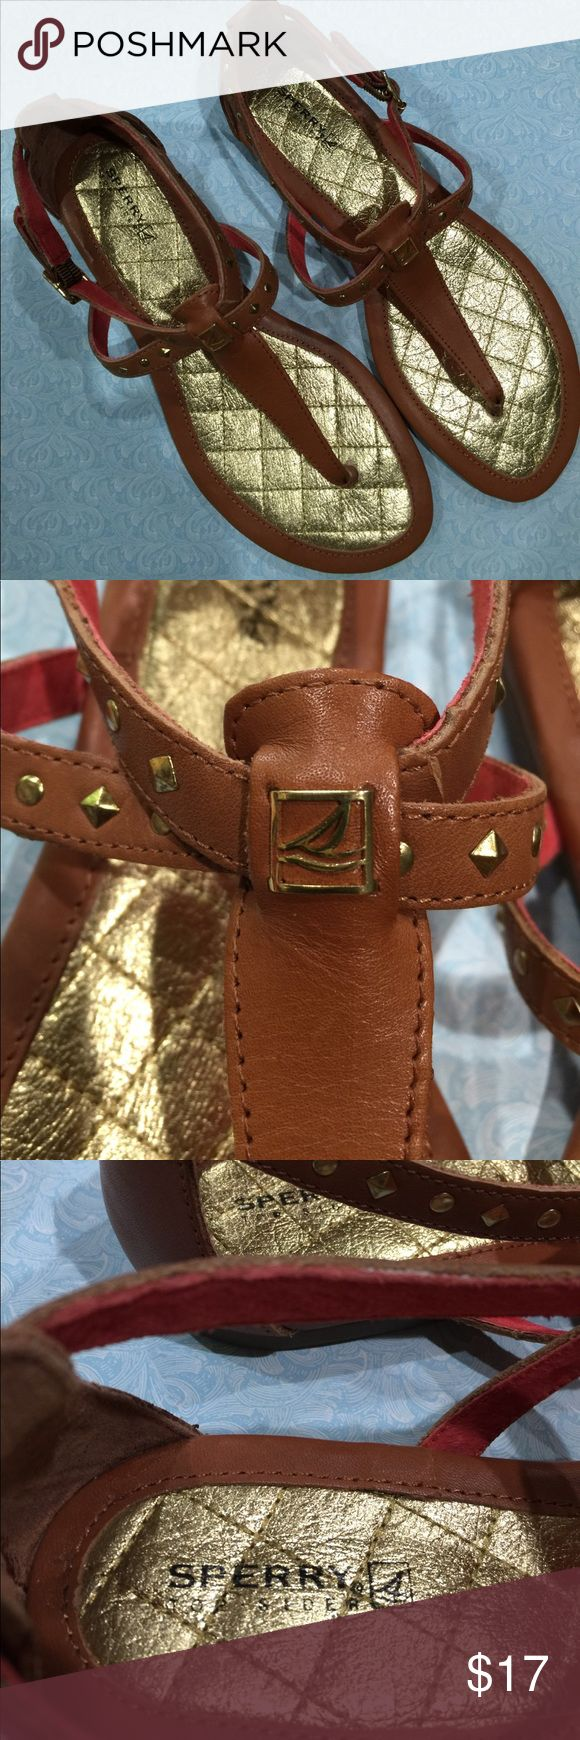 Sperry Top Sider sandals size 8 Brown leather Sperry sandals with gold color grommet detail size 8 Sperry Shoes Sandals